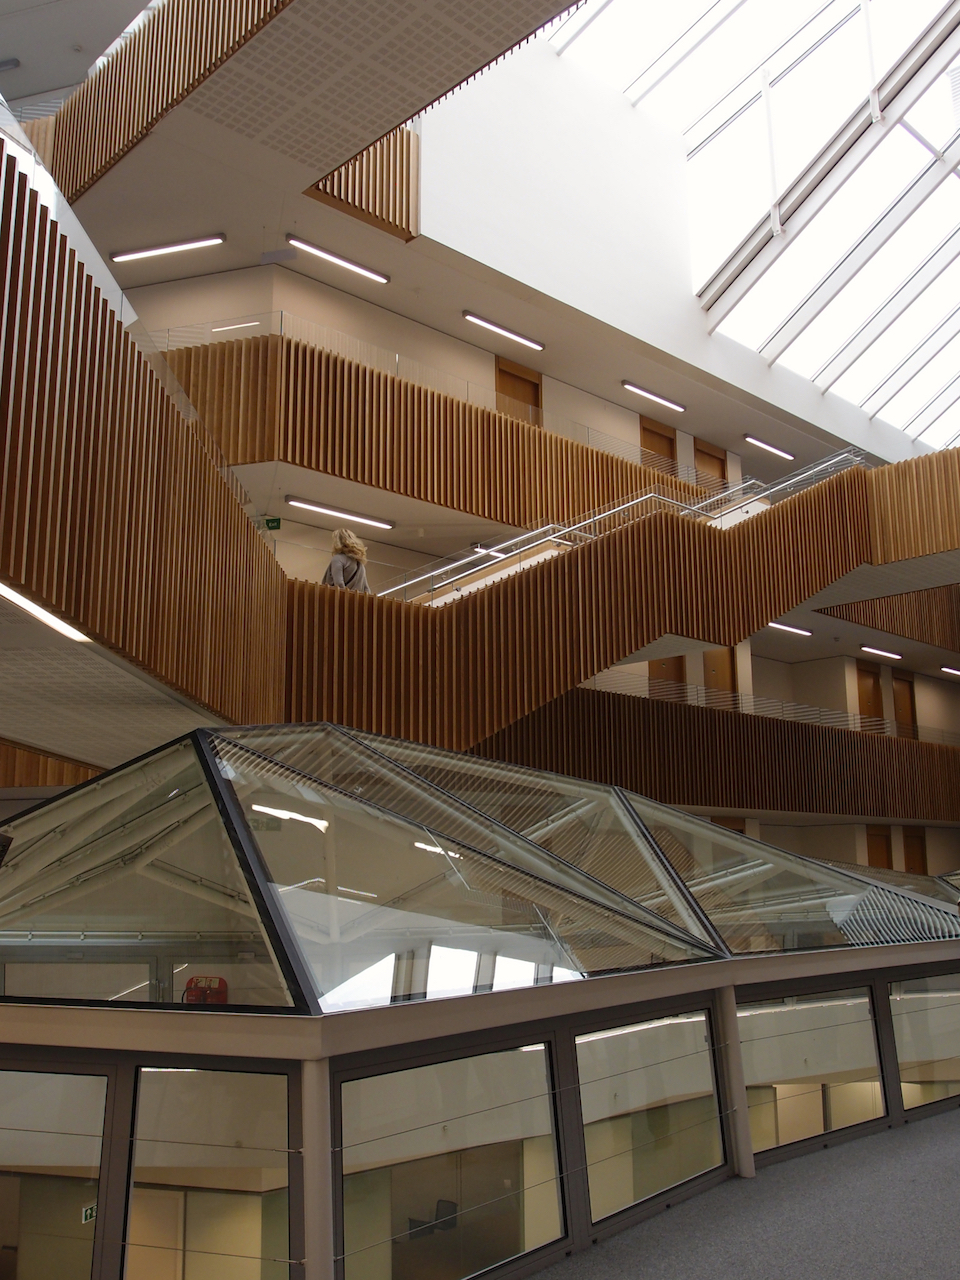 Andrew Wiles Building (Mathematical Institute)